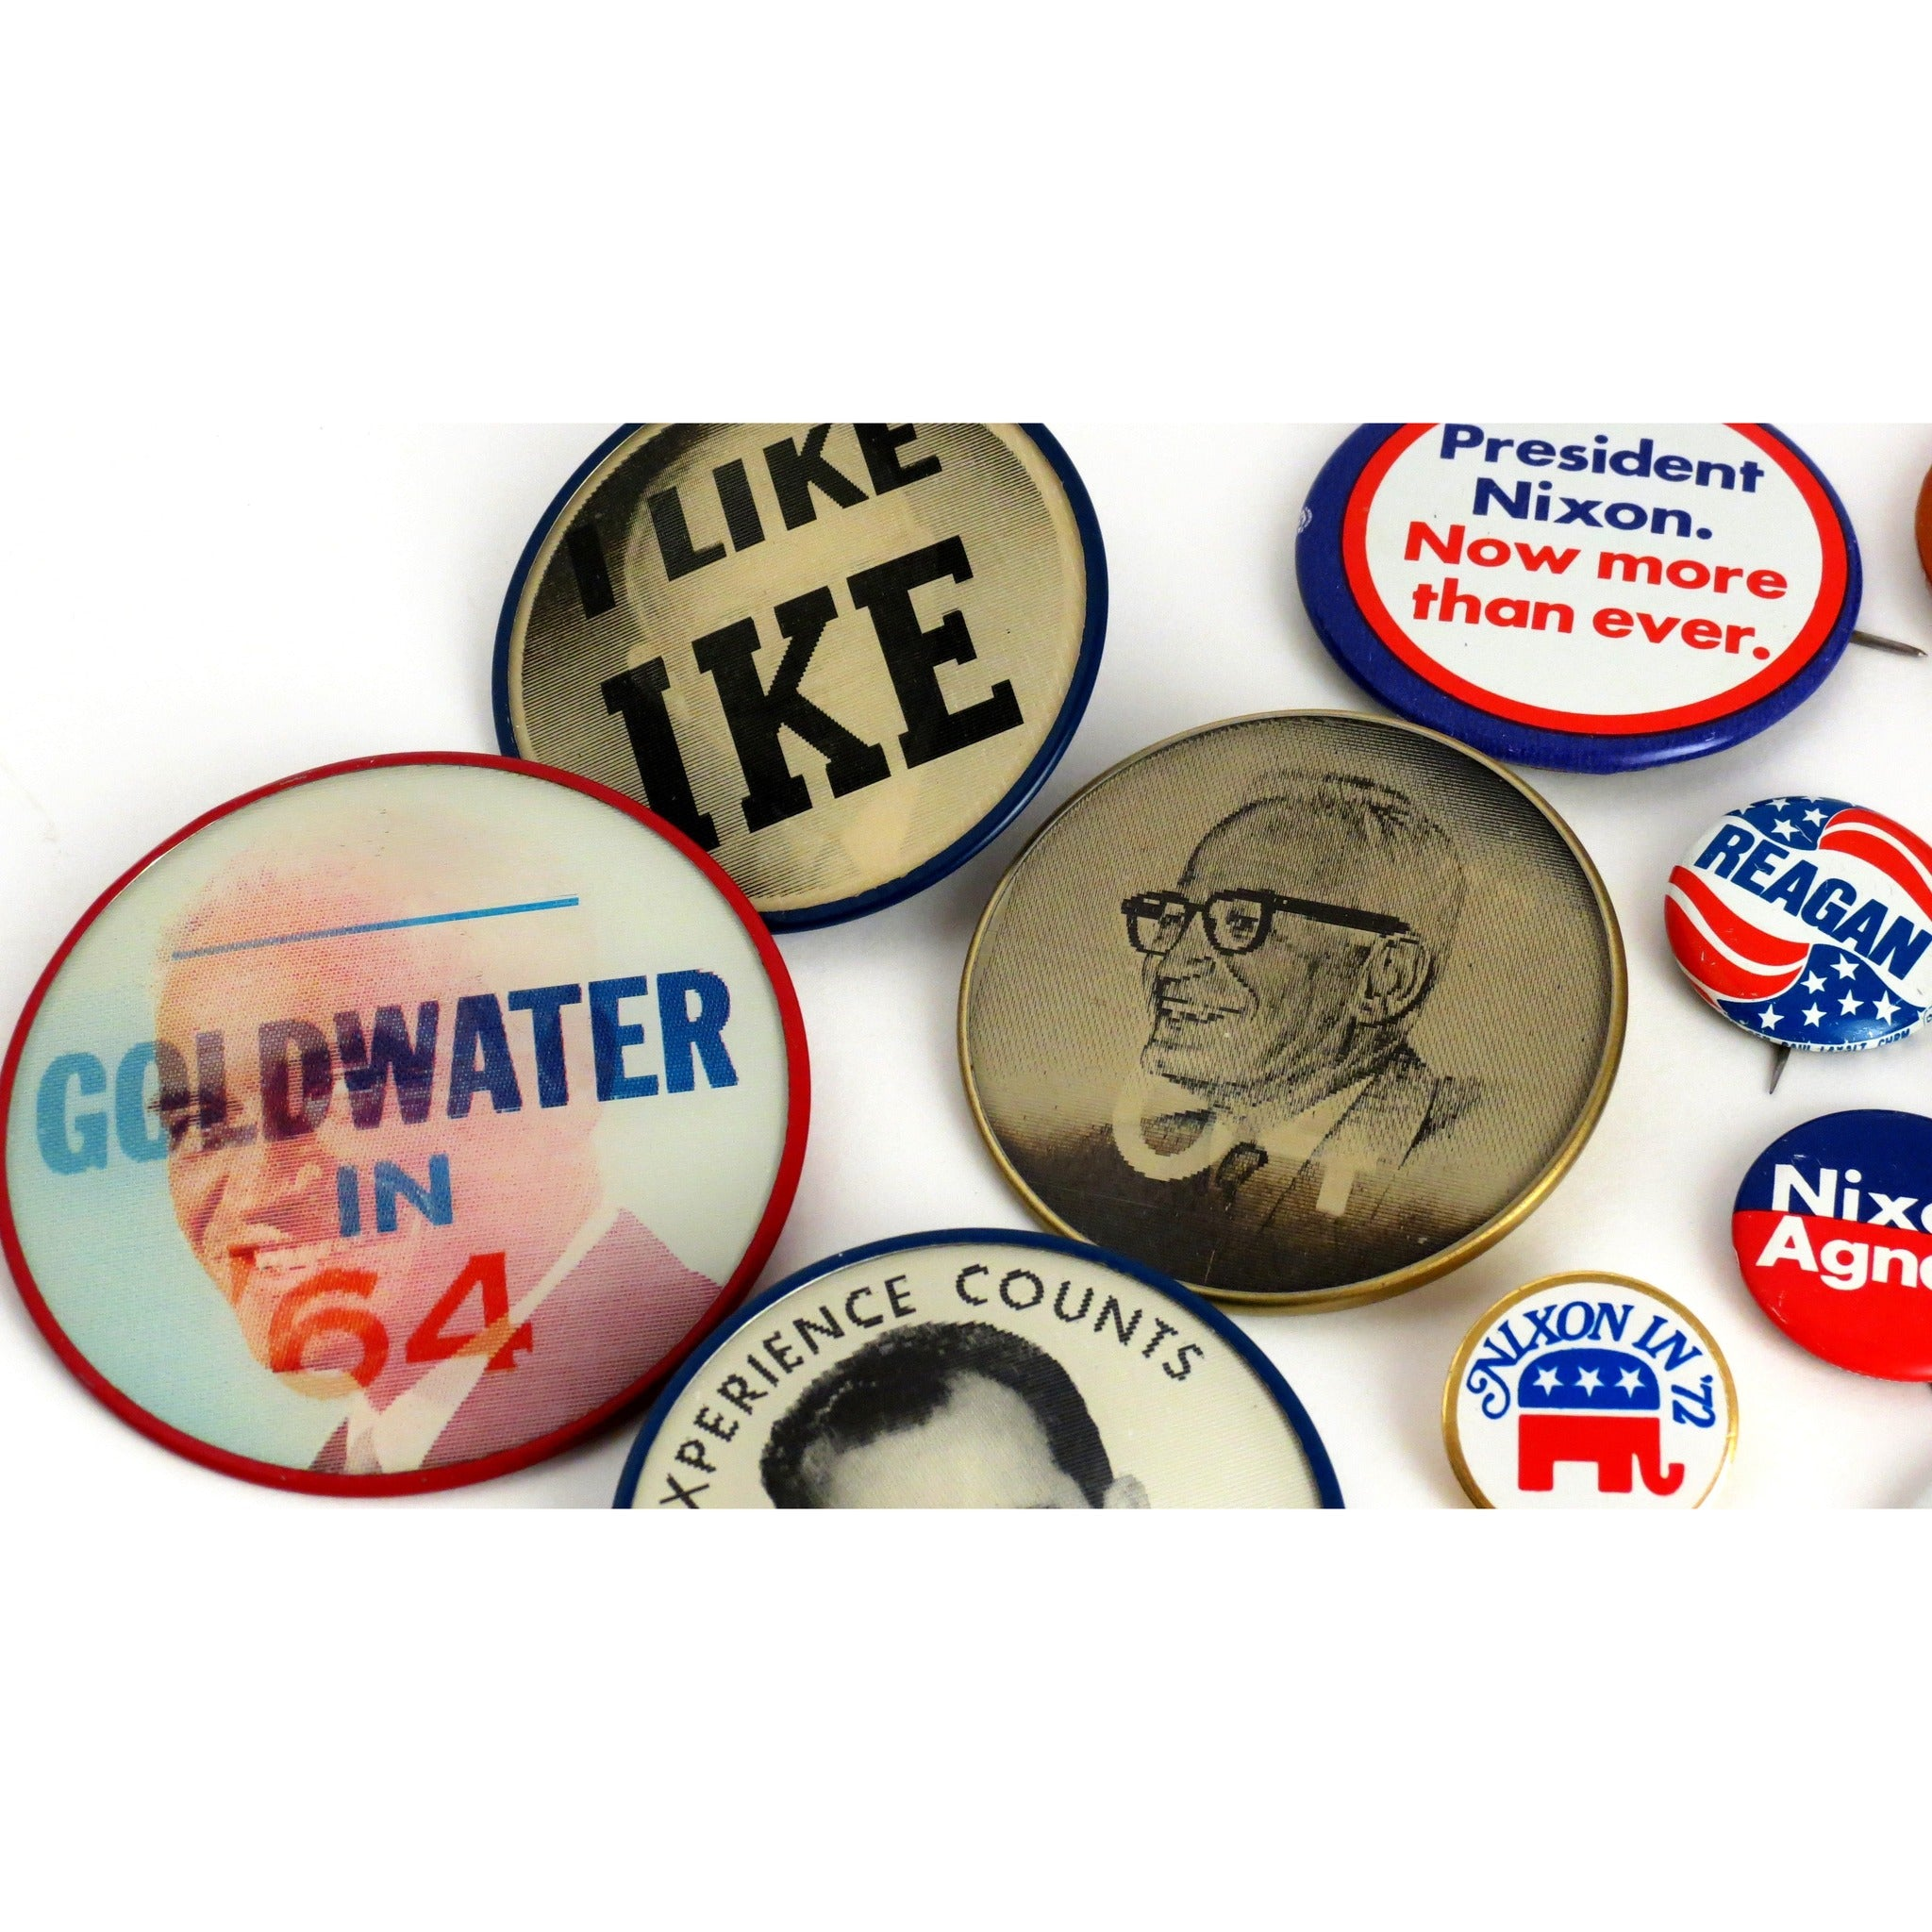 Vintage Lot of 50 1960 Campaign Buttons RN Richard Nixon Is your name Nixon?